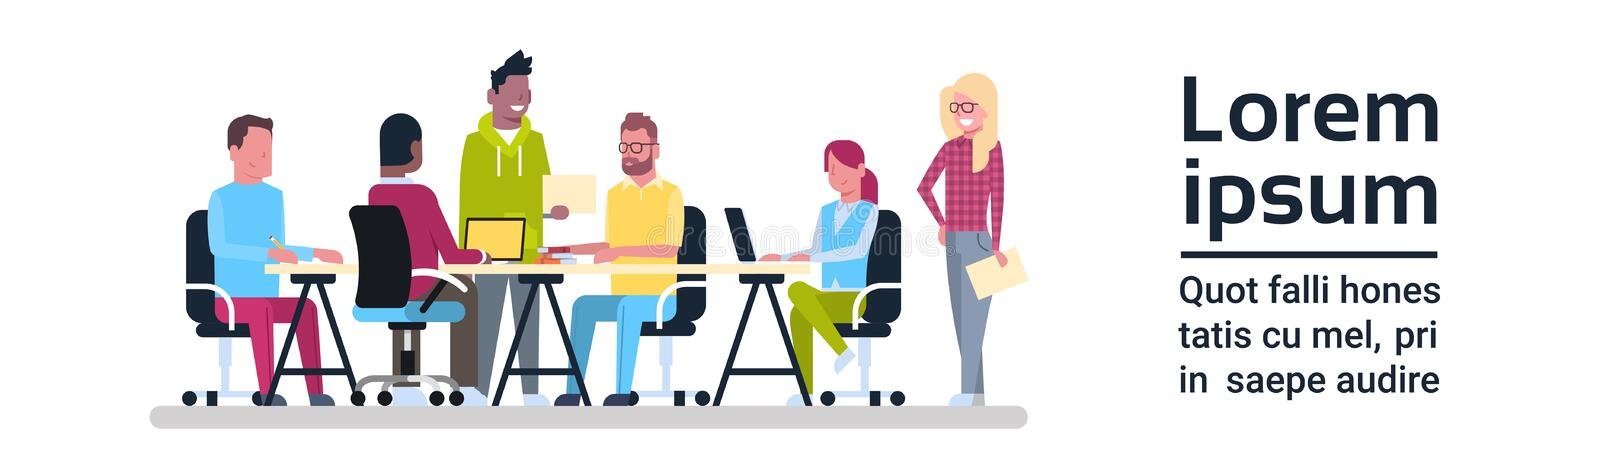 Group Of Creative People Working Business Meeting Team Sitting At Office Desk Brainstorming. Flat Vector Illustration royalty free illustration